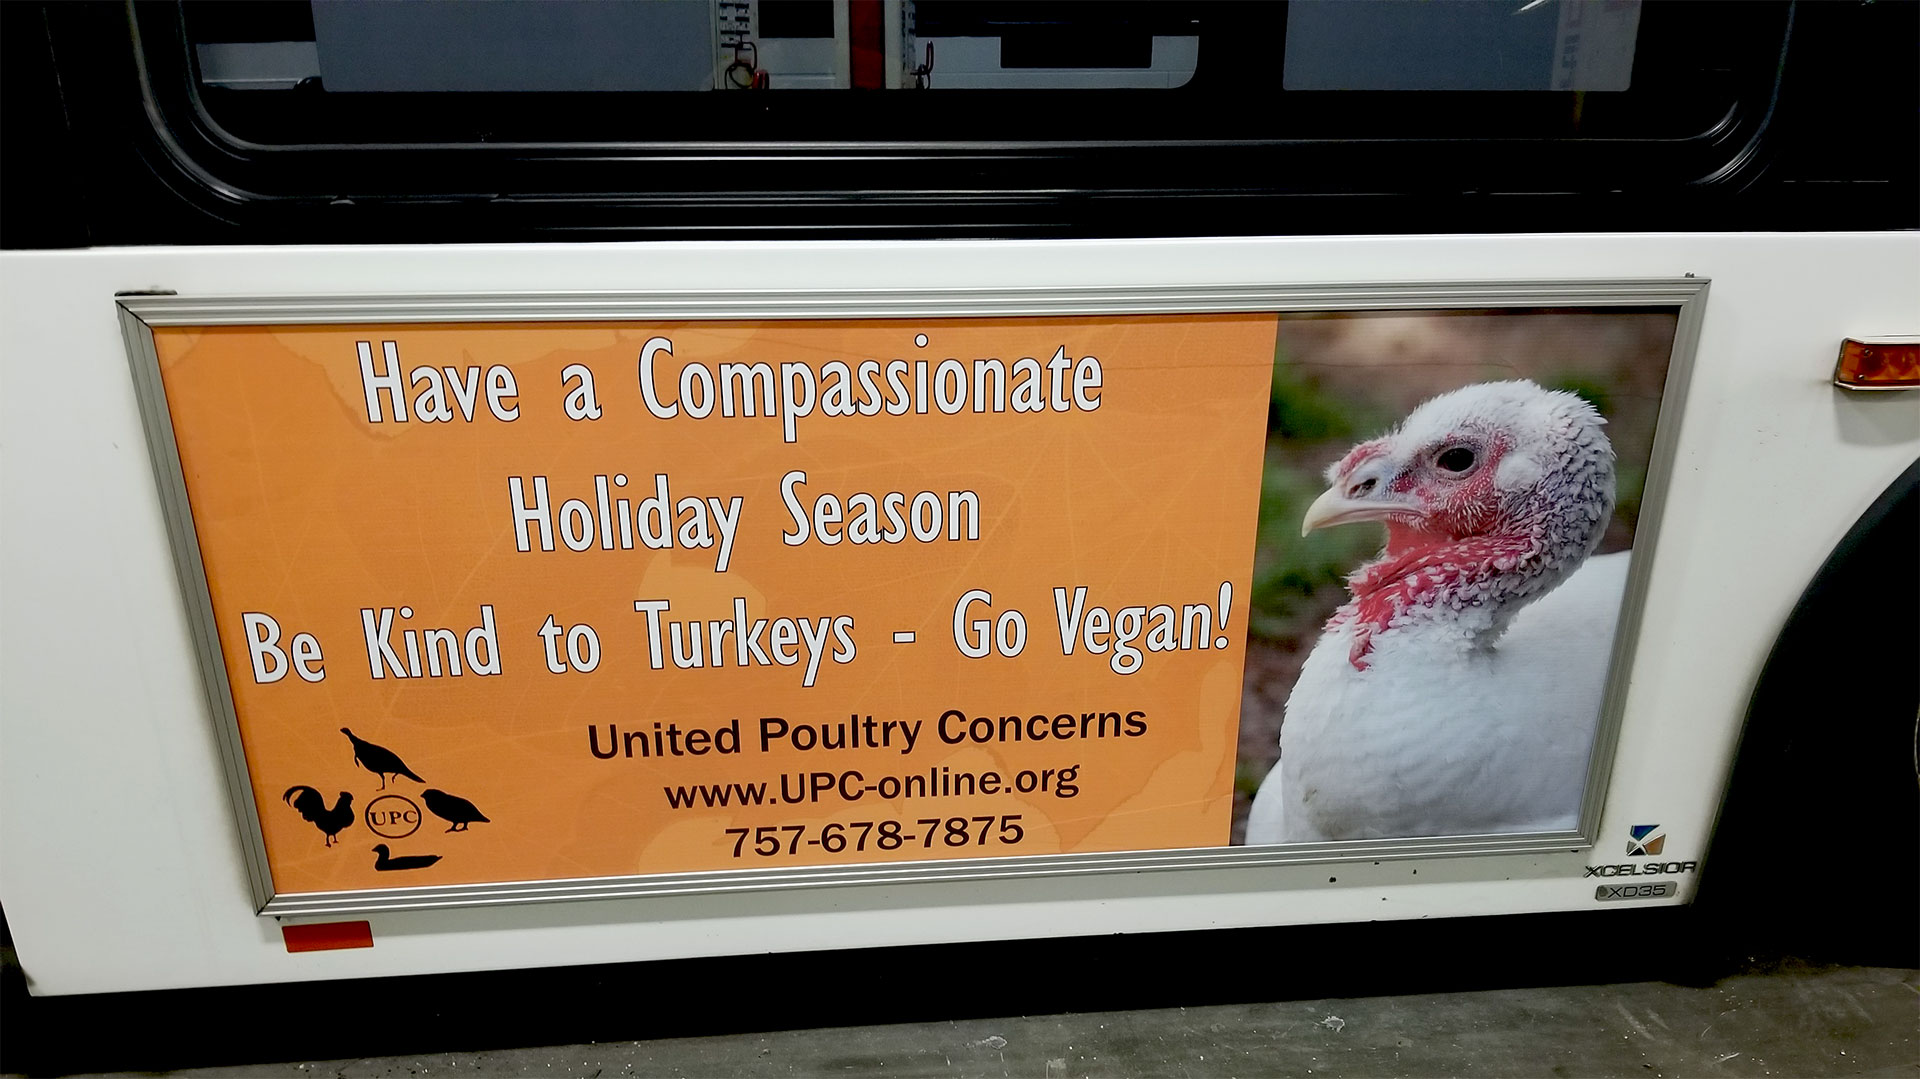 Have a compassionate holiday sign on a bus